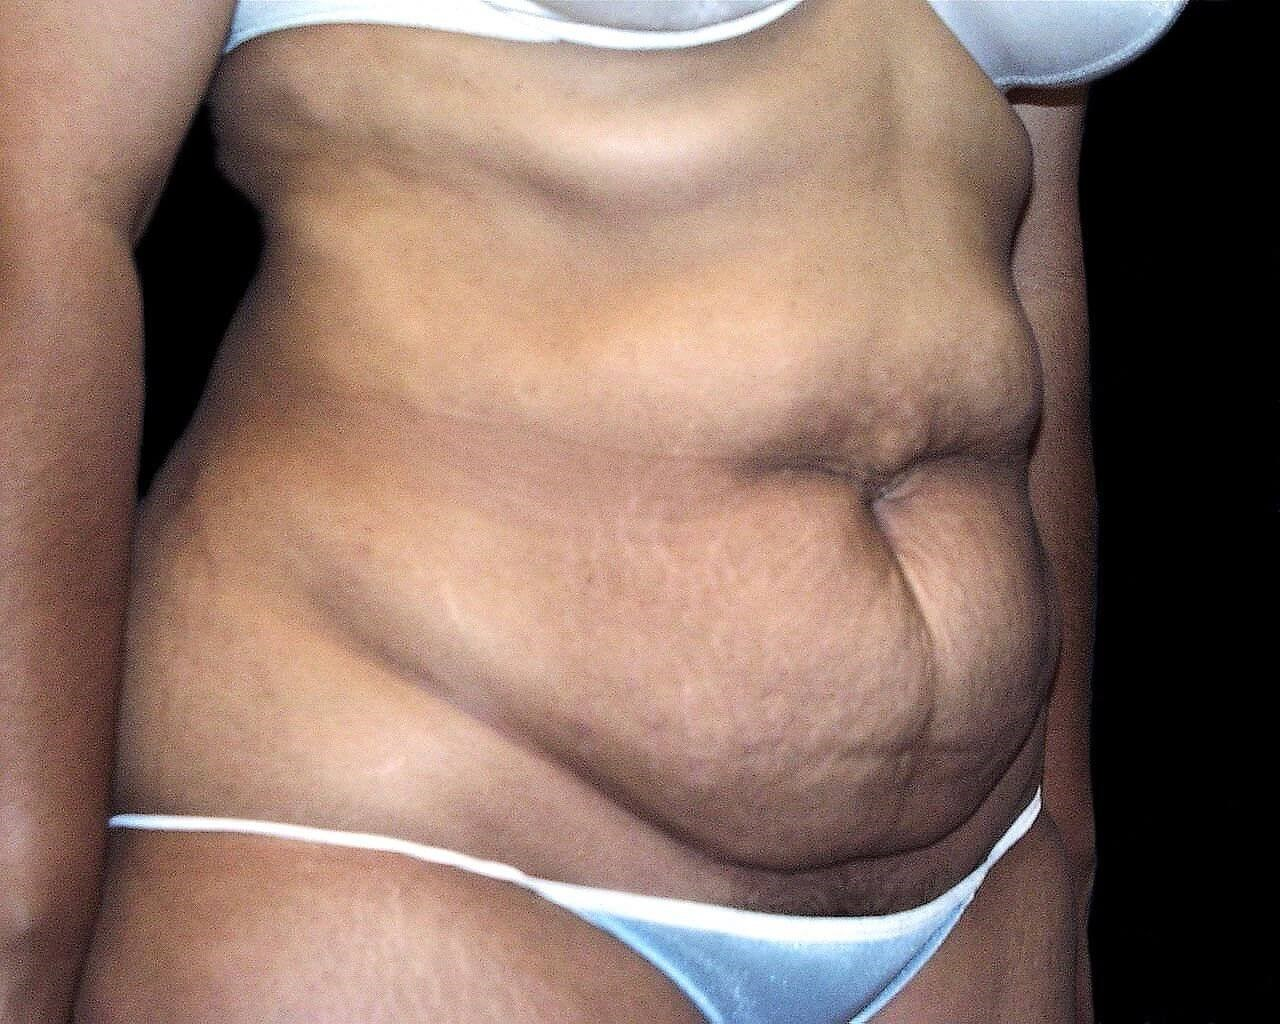 DALLAS, TEXAS WOMAN DEFINES HER WAISTLINE BY HAVING A TUMMY TUCK WITH LIPOSUCTION